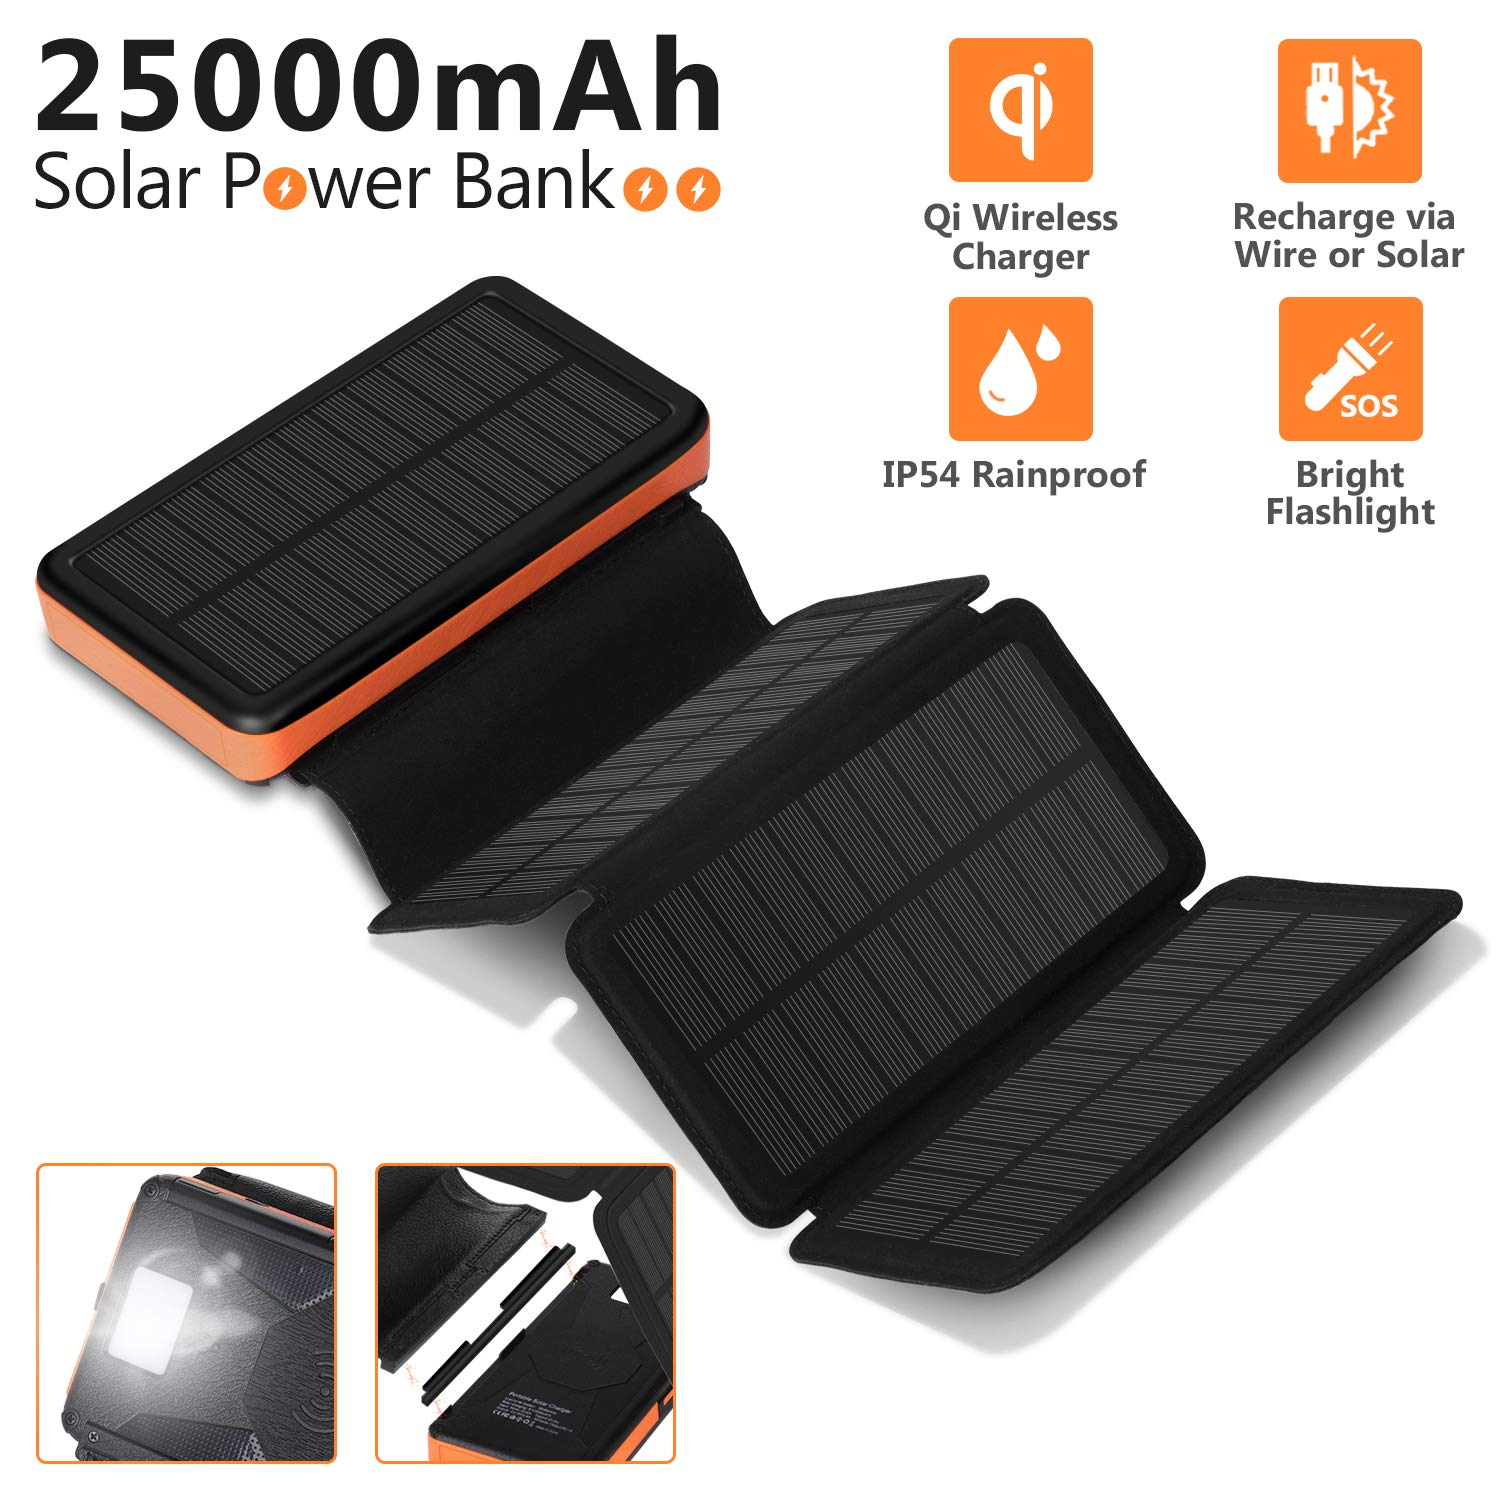 AMAES 25000mAh Solar Charger 7W,4-Panel Detachable Qi Wireless Charger External Battery,Dual 2.4A Output,Type-C Input/Output,Flashlight,IP54 Rainproof by AMAES